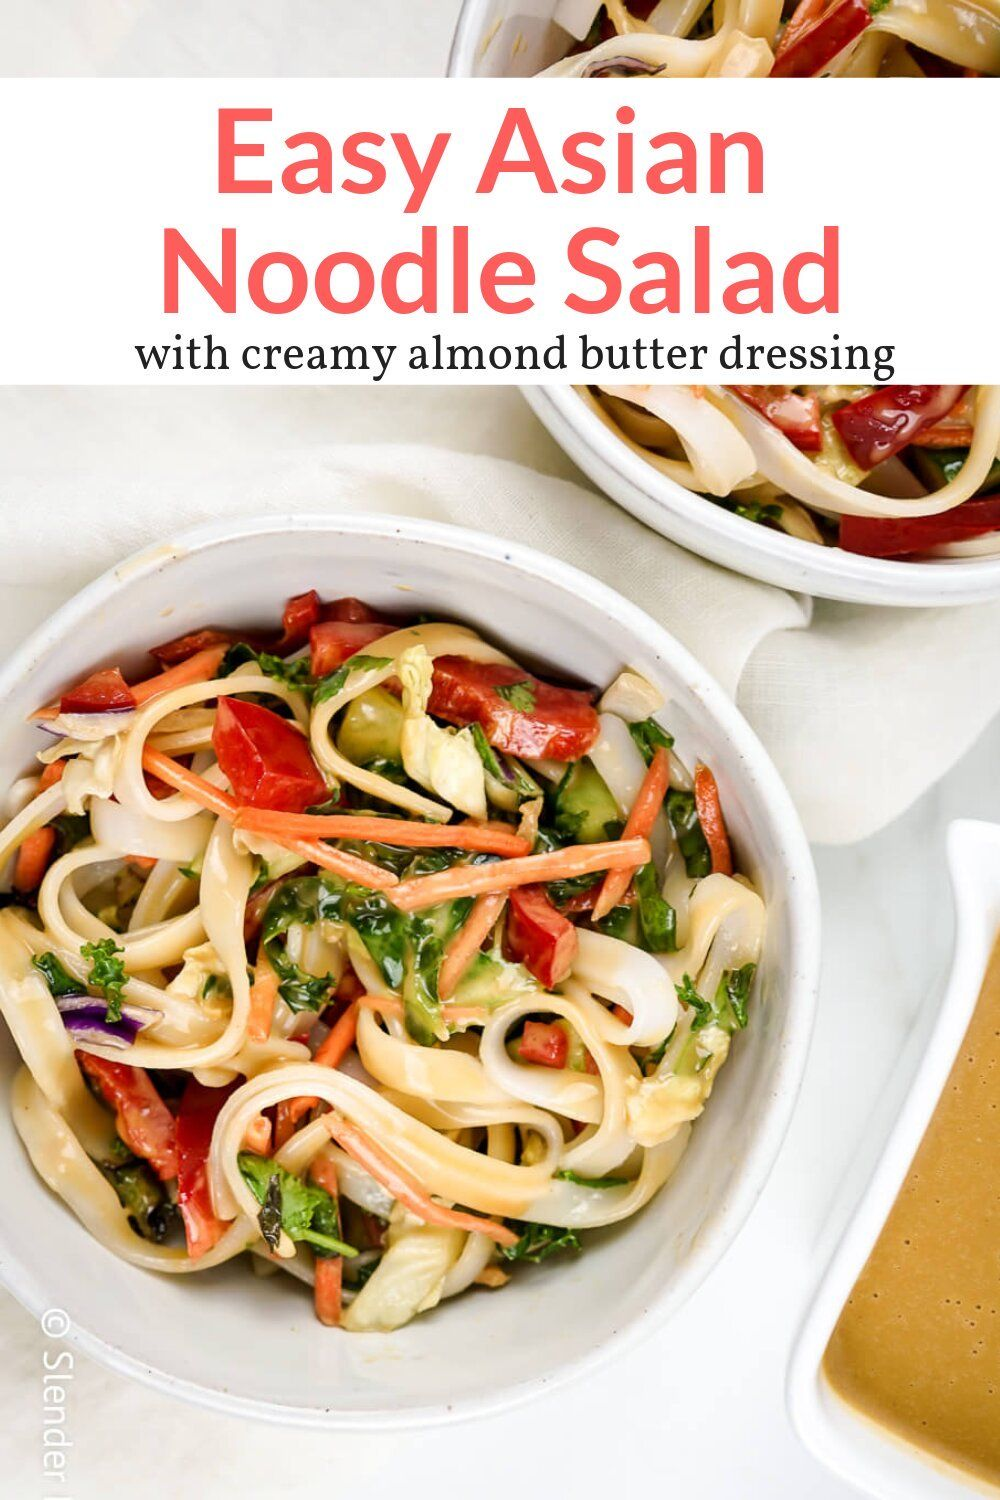 This delicious cold Asian Noodle Salad is packed with crunchy vegetables, rice noodles, and a tasty almond butter dressing that can be made sweet or spicy. #dinner #lunch #salad #sidedish #kidfriendly #makeahead #quickandeasy